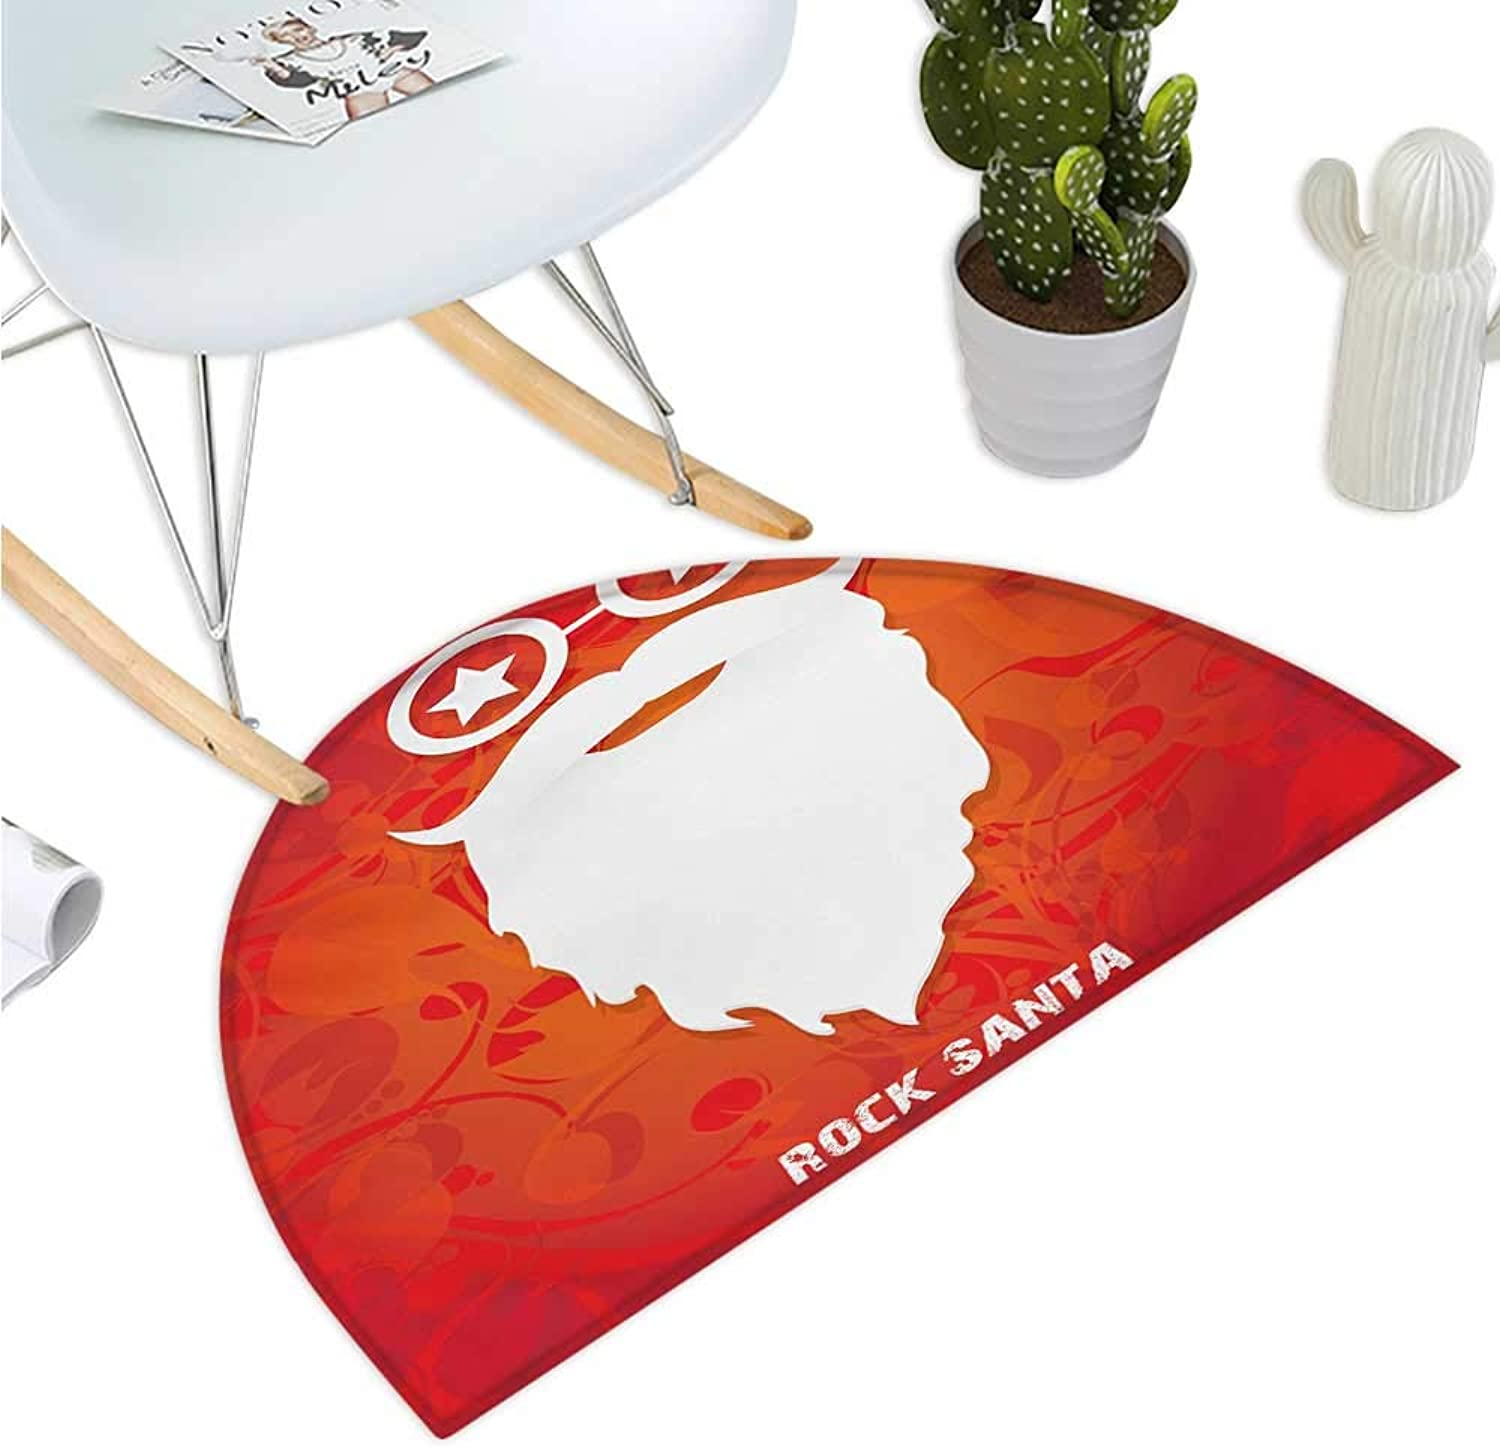 Indie Semicircular Cushion Rock Santa Claus Christmas Theme Beard Silhouette and Round Glasses with Stars Bathroom Mat H 39.3  xD 59  Red orange White